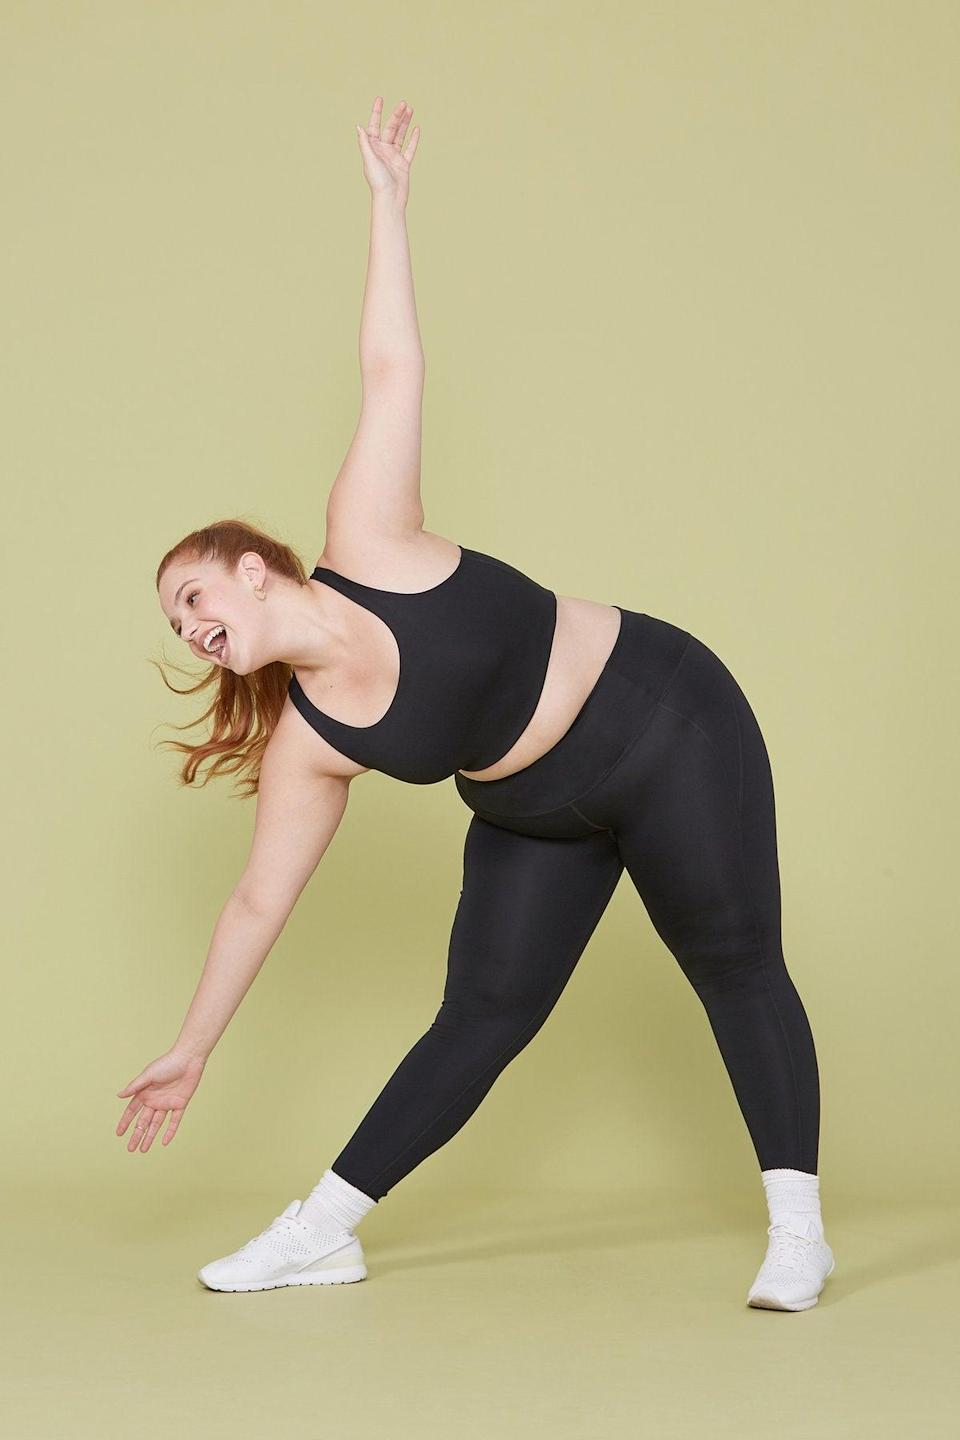 """<strong><h3>Girlfriend Collective: The """"So Good It Launched An Entire Brand"""" Legging</h3></strong><br>Girlfriend Collective may have only launched in 2017, but thanks to these comfortable leggings made from <a href=""""https://www.refinery29.com/en-us/girlfriend-collective-leggings-lite-review"""" rel=""""nofollow noopener"""" target=""""_blank"""" data-ylk=""""slk:recycled plastic bottles"""" class=""""link rapid-noclick-resp"""">recycled plastic bottles</a>, it's already gained a cult following.<br><br><strong>The hype:</strong> 4.9 out of 5 stars and 11,798 reviews on Girlfriend Collective<br><br><strong>What they're saying:</strong> """"I saw the reviews too. I was skeptical too. I thought """"they're just a pair of leggings, why are people so obsessed?"""" too. But they are. They really are just the best leggings. They have the perfect amount of compression - enough to keep you together but not a battle to get in to. They're the perfect rise. They don't go sheer. They don't pill. They just work so well. I don't even notice I've sweat in these. I love."""" - Madeline G., Girlfriend Collective Review<br><br><strong>Girlfriend Collective</strong> Black Compressive High-rise Legging, $, available at <a href=""""https://go.skimresources.com/?id=30283X879131&url=https%3A%2F%2Fwww.girlfriend.com%2Fcollections%2Fleggings%2Fproducts%2Fblack-compressive-high-rise-legging"""" rel=""""nofollow noopener"""" target=""""_blank"""" data-ylk=""""slk:Girlfriend Collective"""" class=""""link rapid-noclick-resp"""">Girlfriend Collective</a>"""